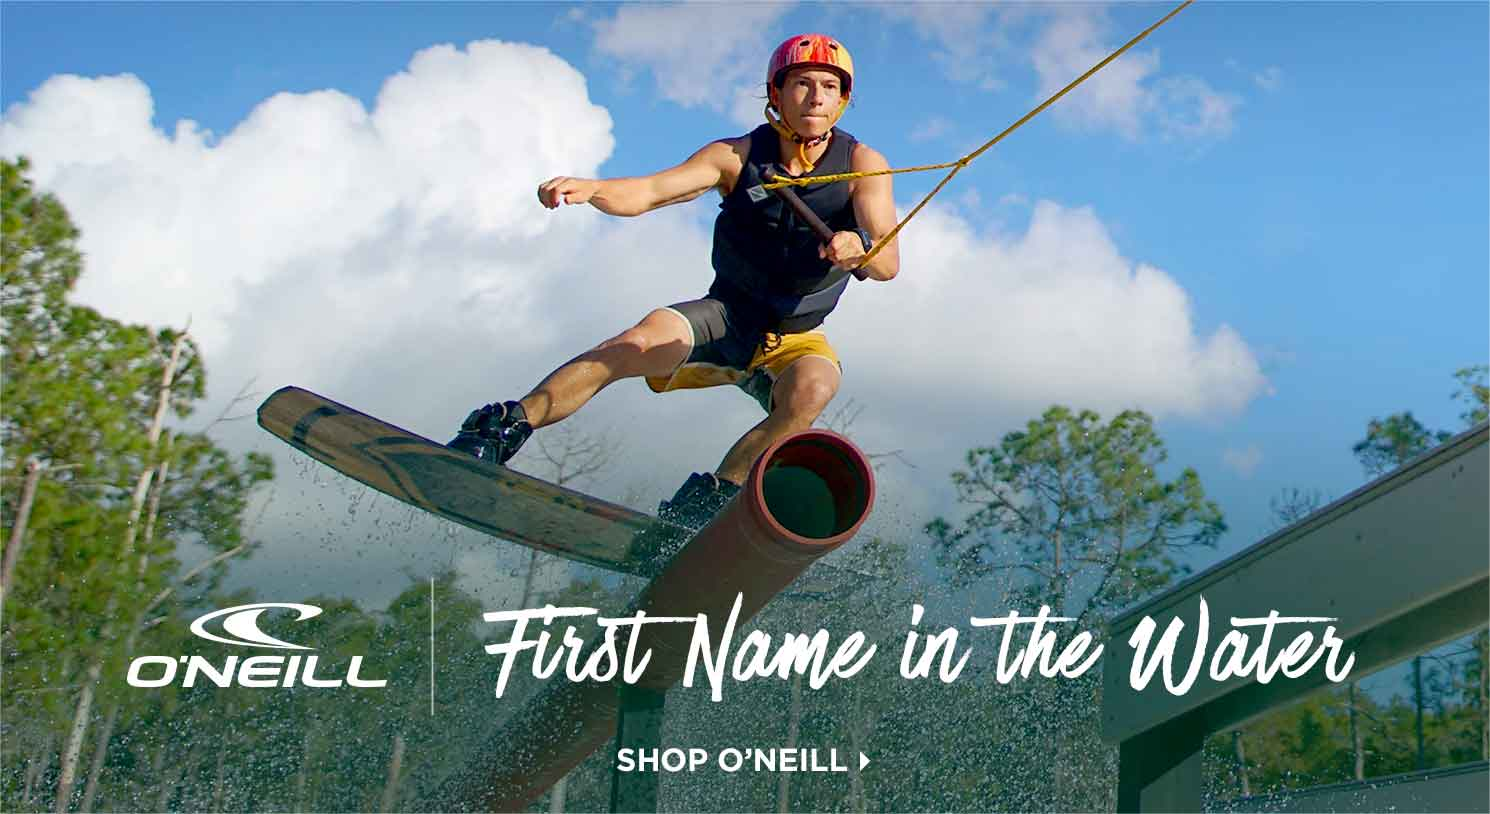 O'Neill: First Name in the Water